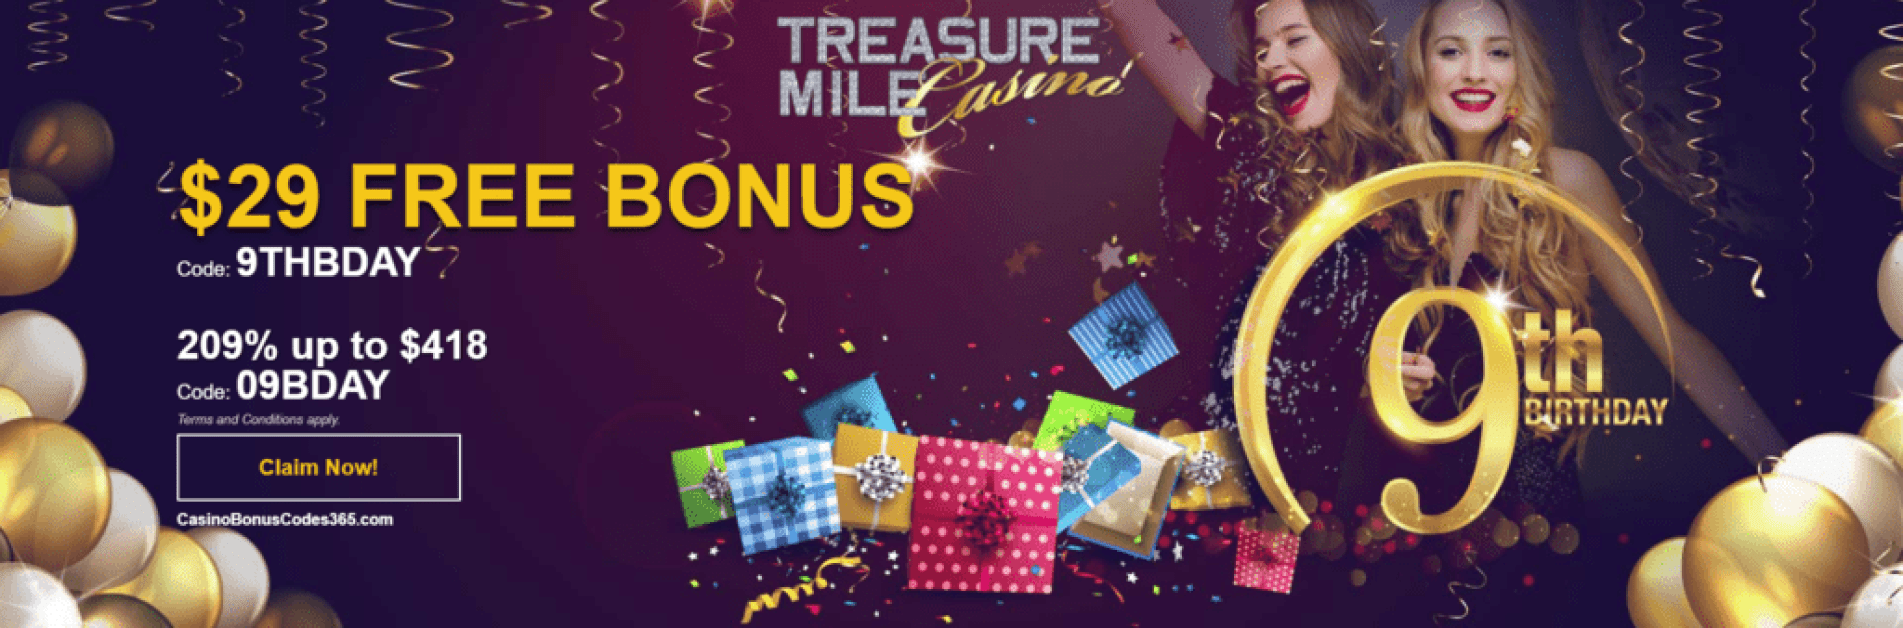 Treasure Mile Casino 9th Birthday $29 FREE Chip plus 209% Match up to $418 Bonus